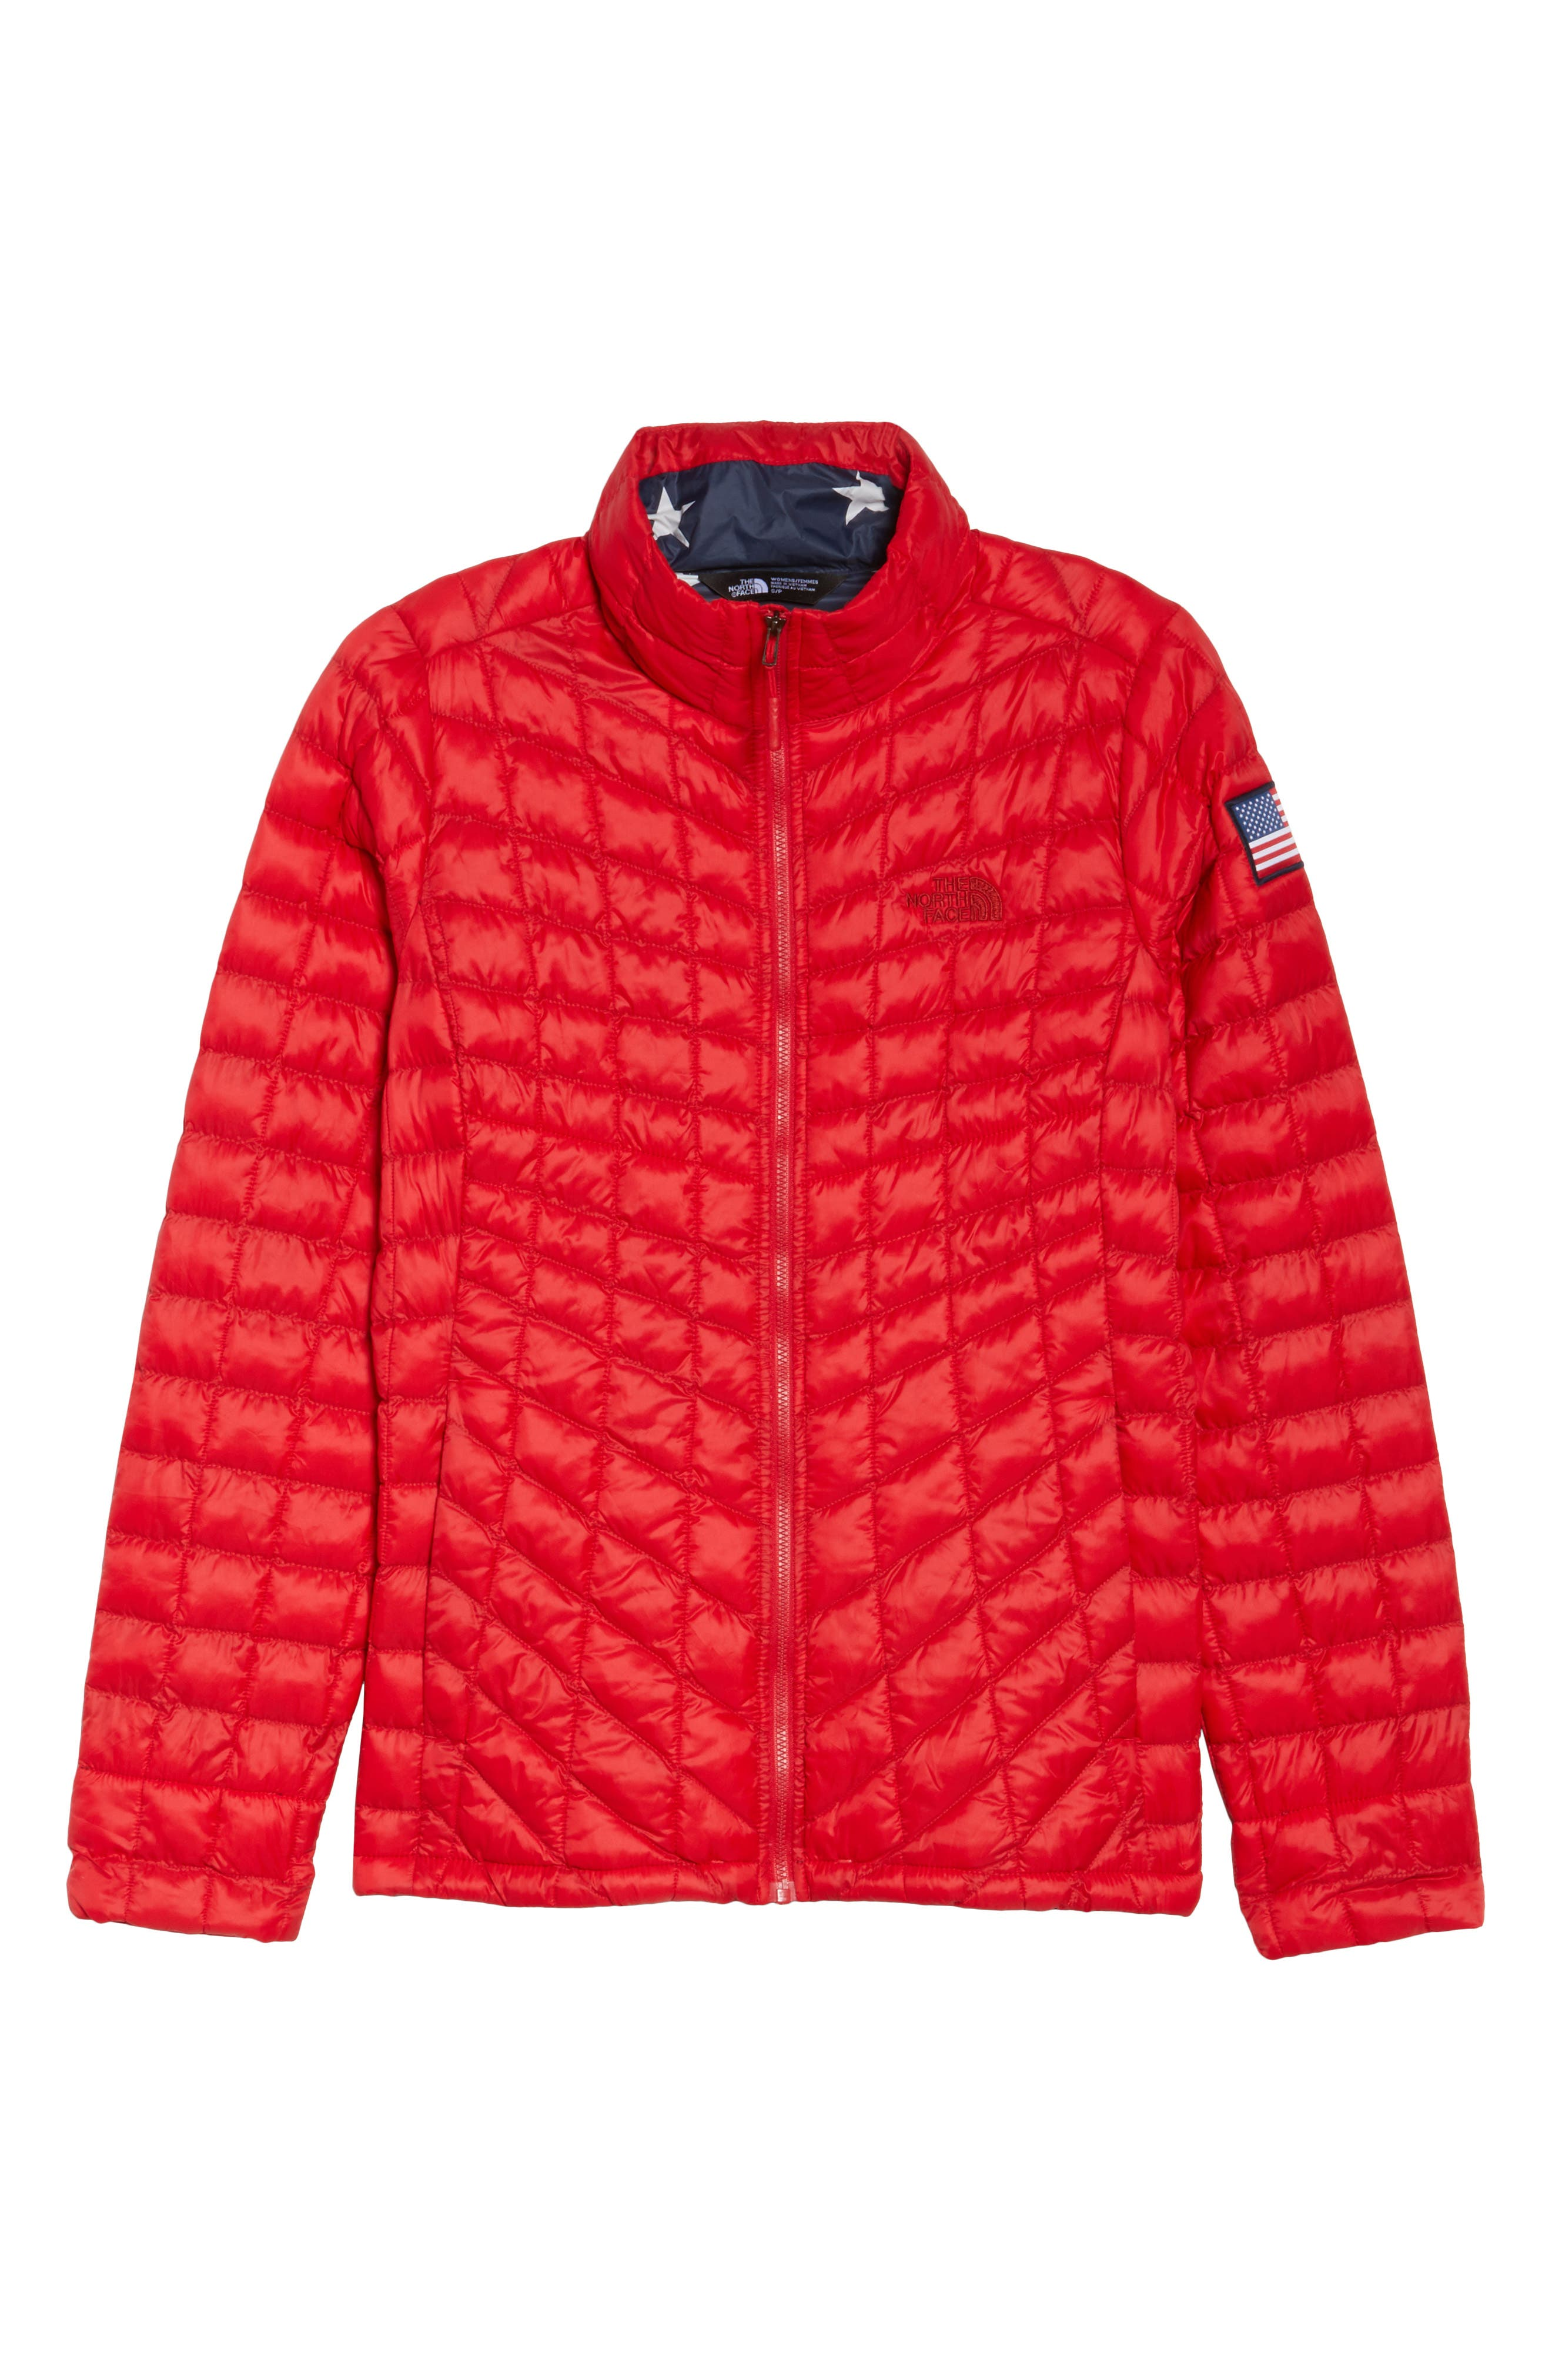 ThermoBall<sup>™</sup> PrimaLoft<sup>®</sup> Jacket,                             Alternate thumbnail 7, color,                             Tnf Red